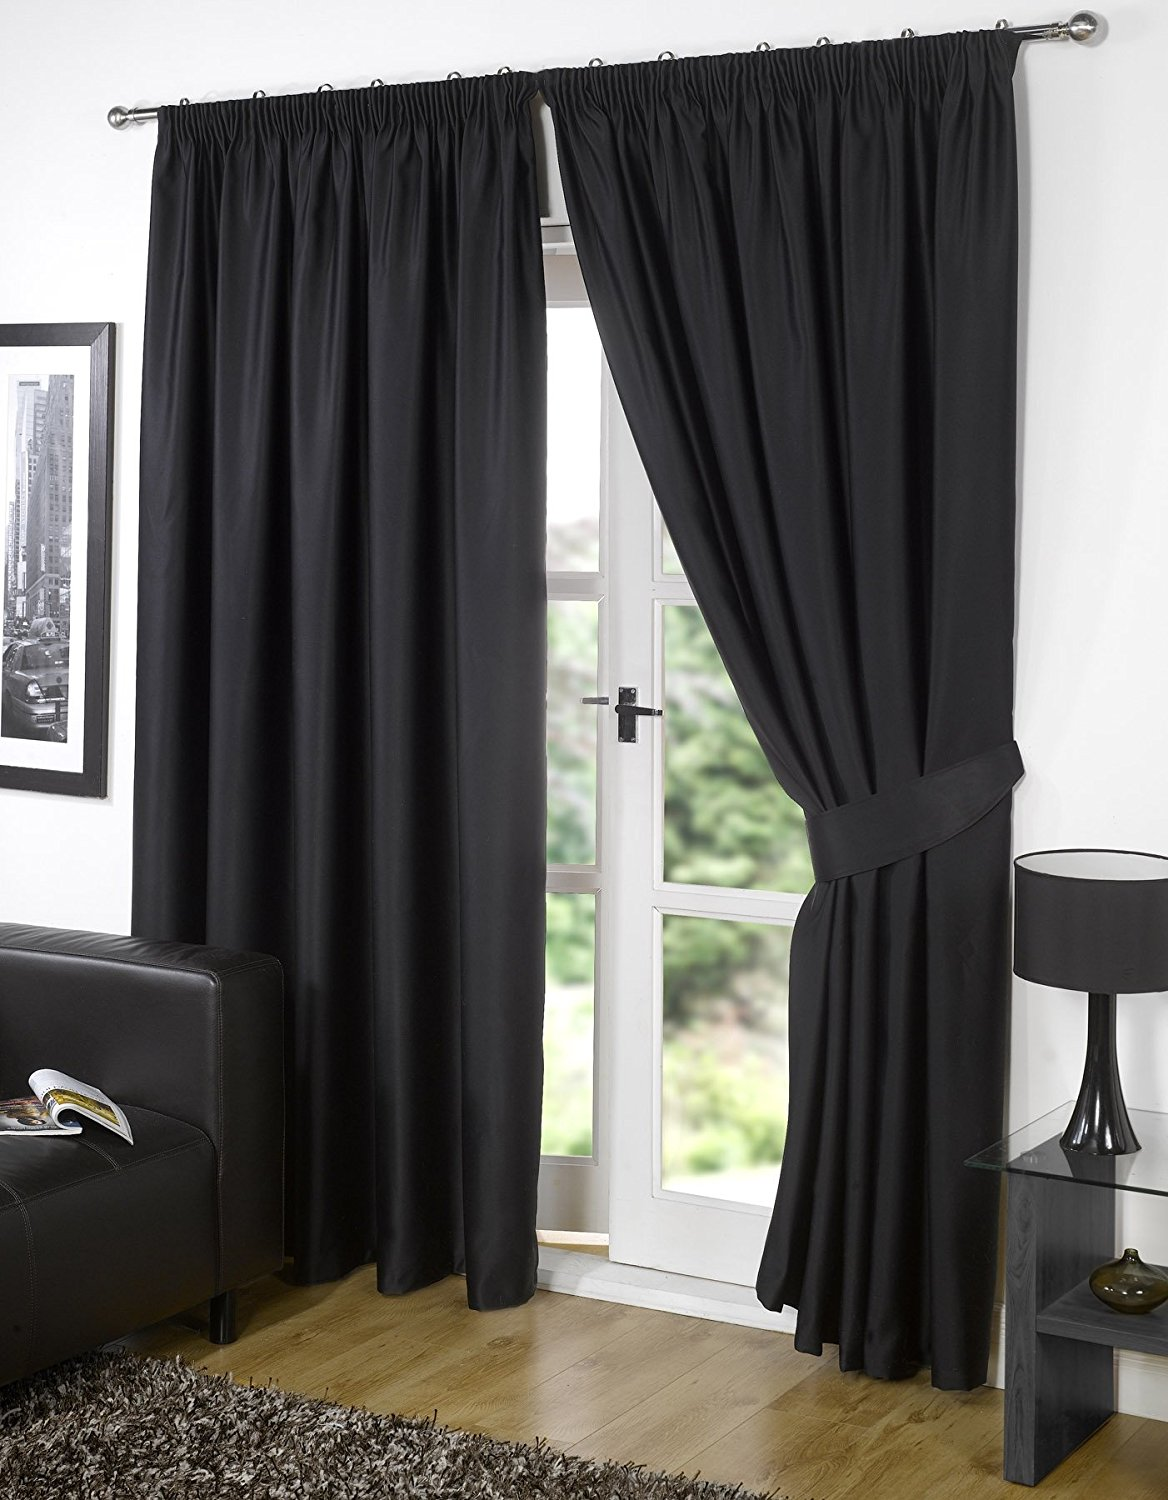 NEW Dreamscene Fully Lined Thermal Blackout Pencil Pleat Curtains